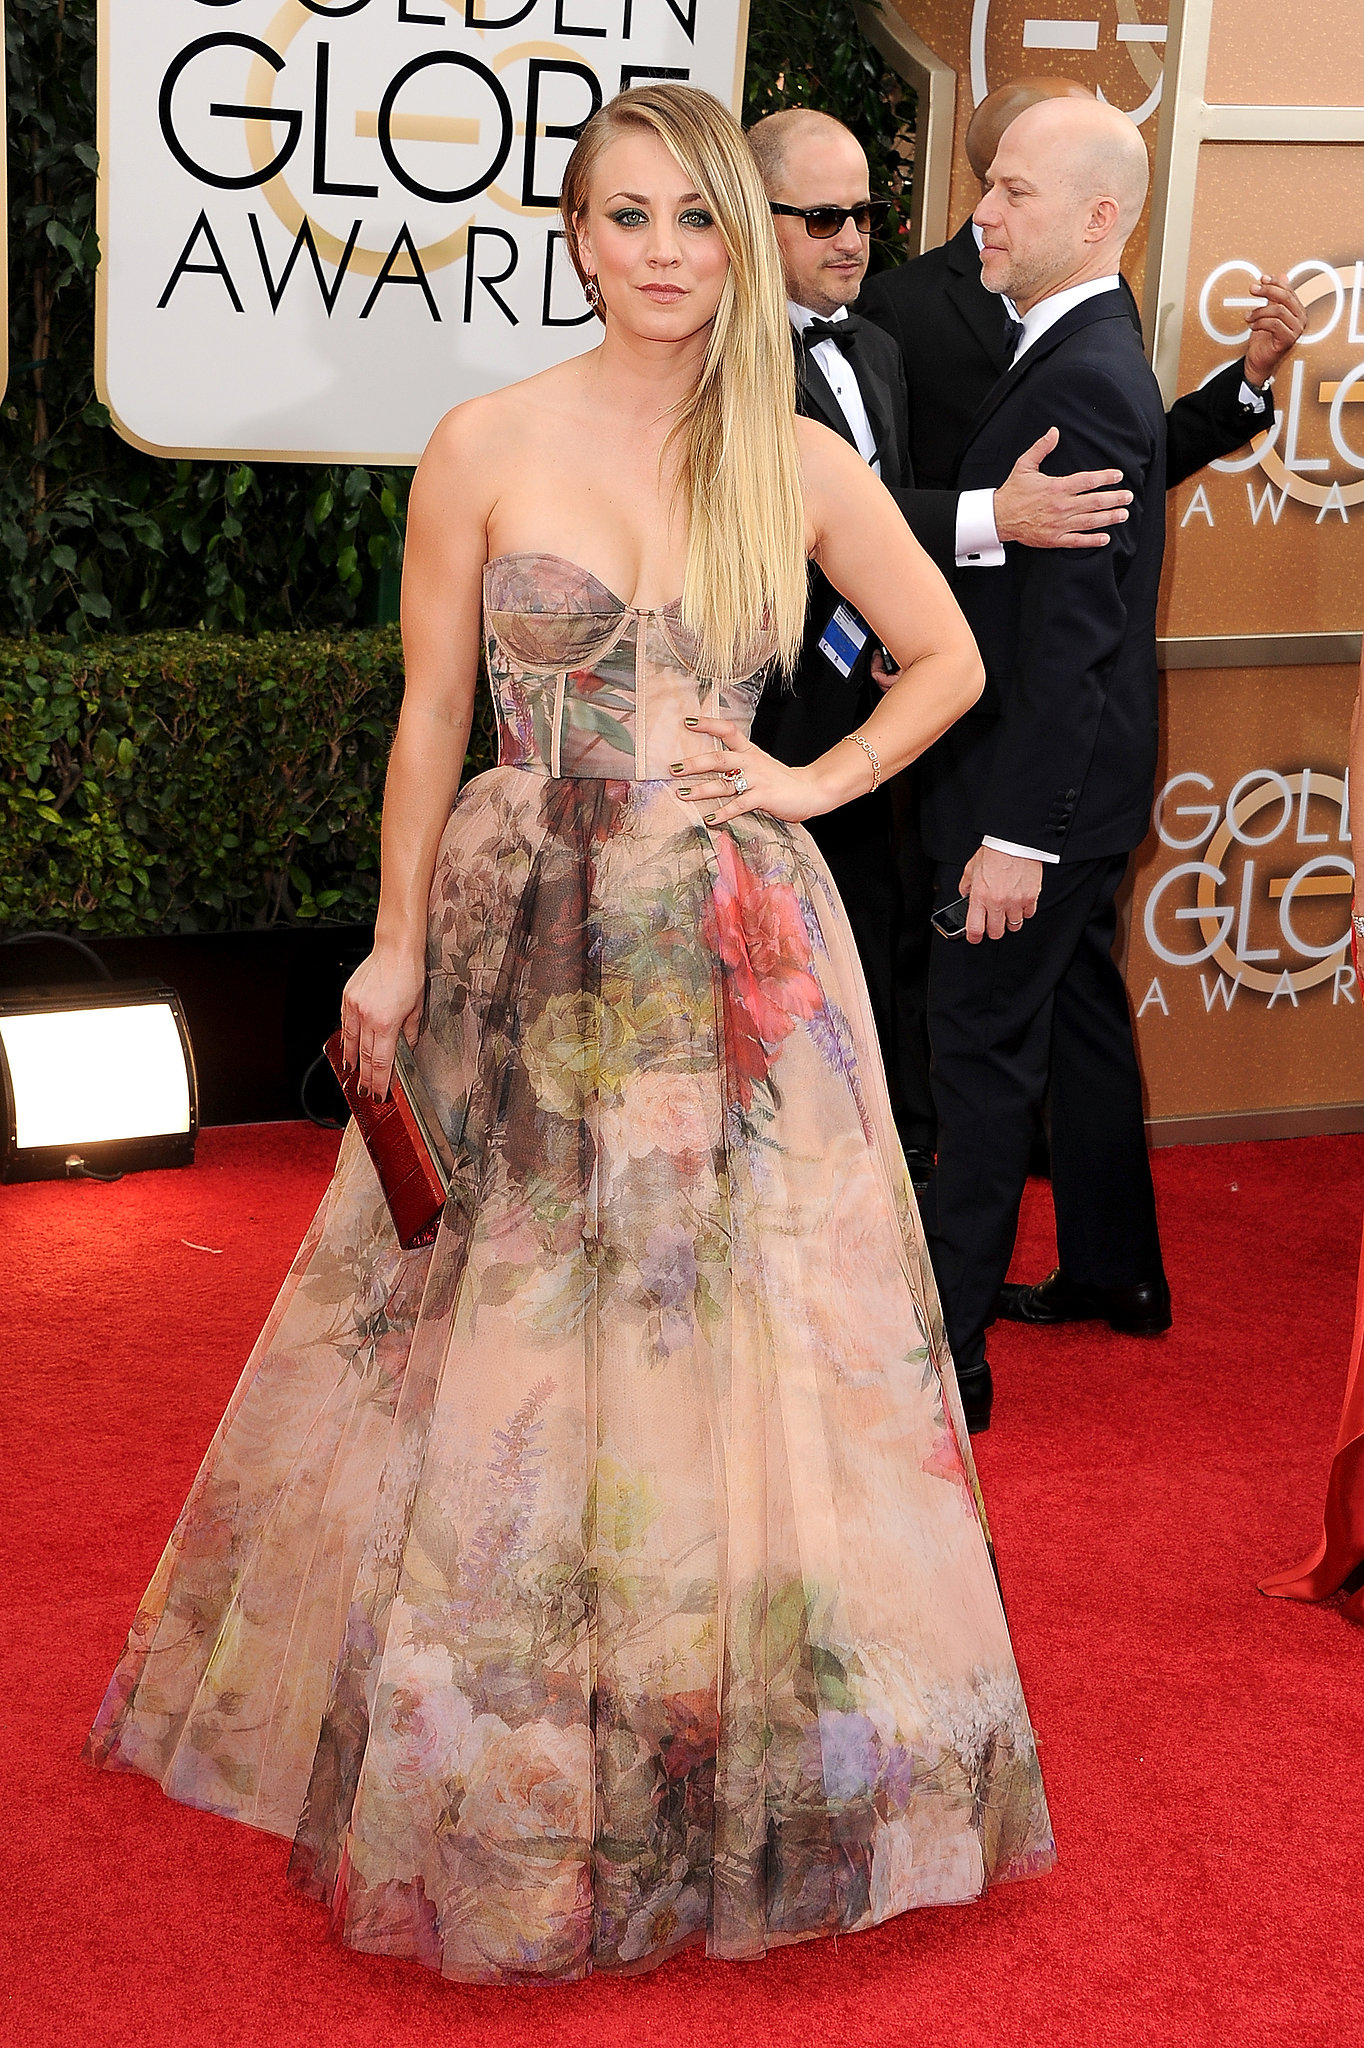 Kaley Cuoco wore a printed gown to the Golden Globe Awards.